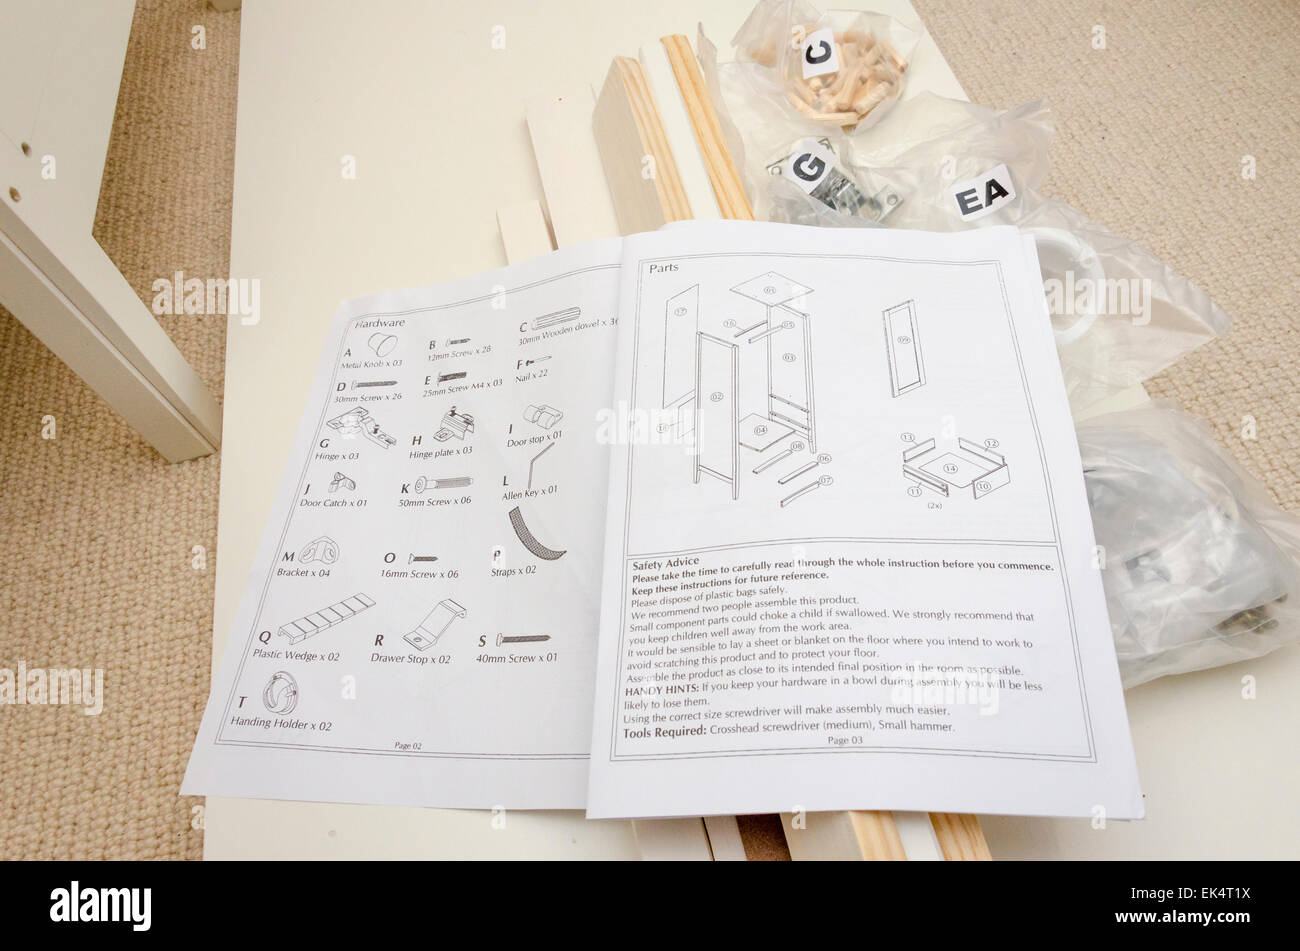 Self assembly flat pack furniture with component fixings and instruction guide - Stock Image